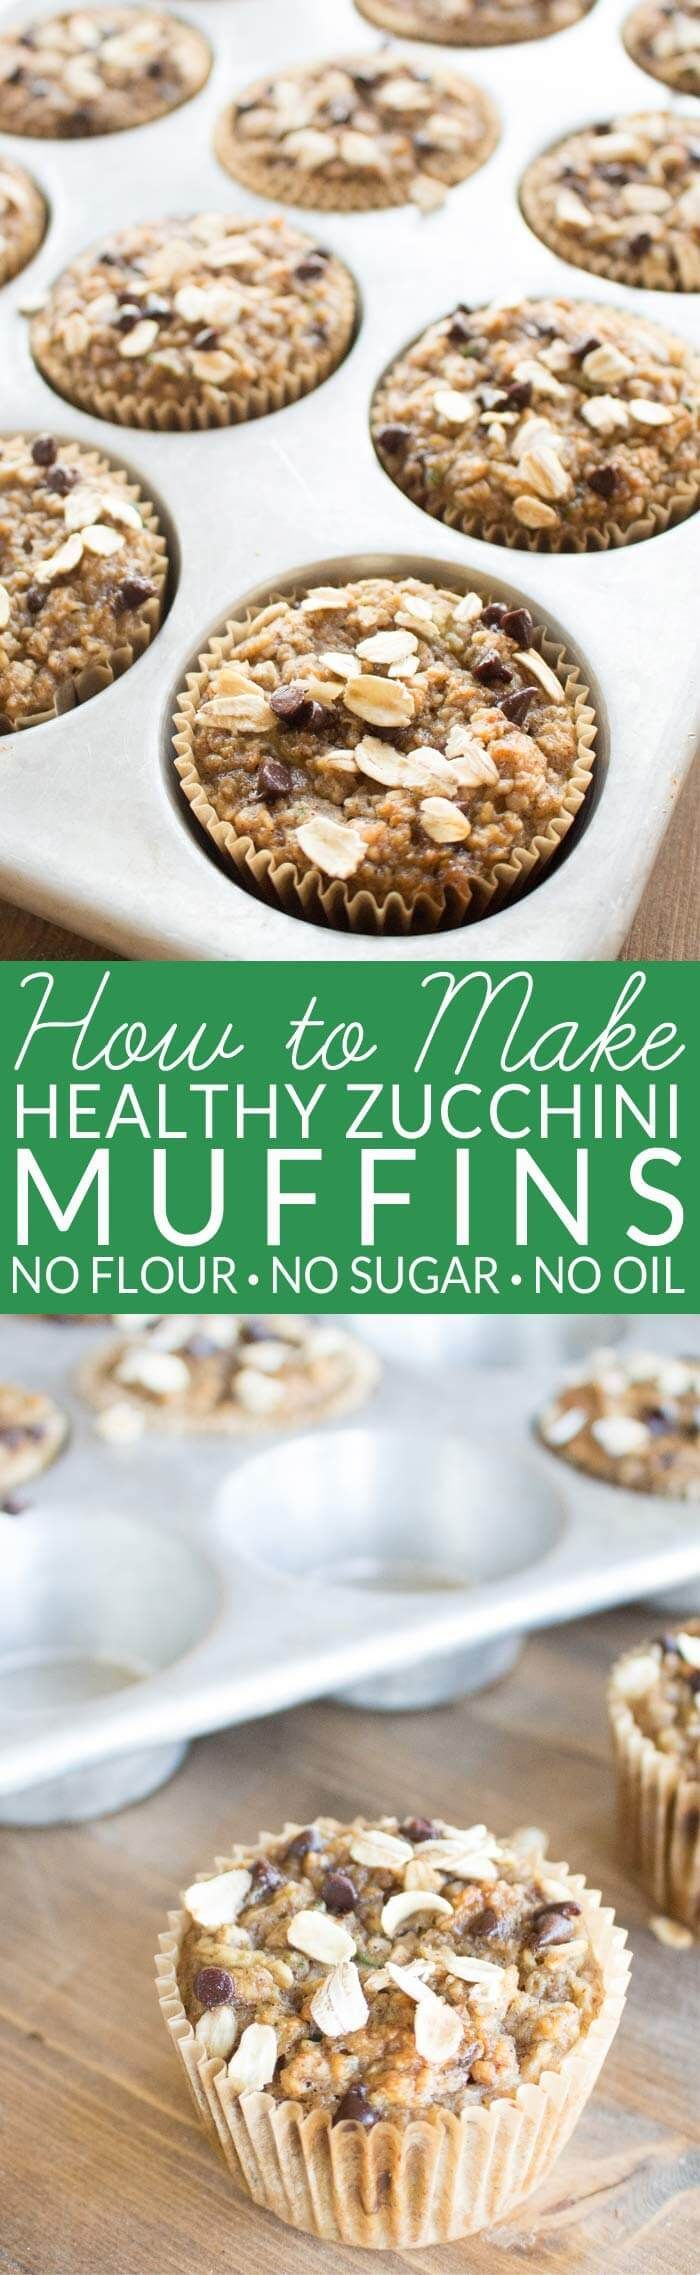 Healthy Zucchini Muffins contain no oil, no refined sugar, and no flour. The oil and sugar are replaced with ripe bananas and the flour is replaced with whole grain oats. Zucchini and spices give the muffins classic zucchini bread flavor. Enjoy a fall favorites with no guilt. via @brendidblog